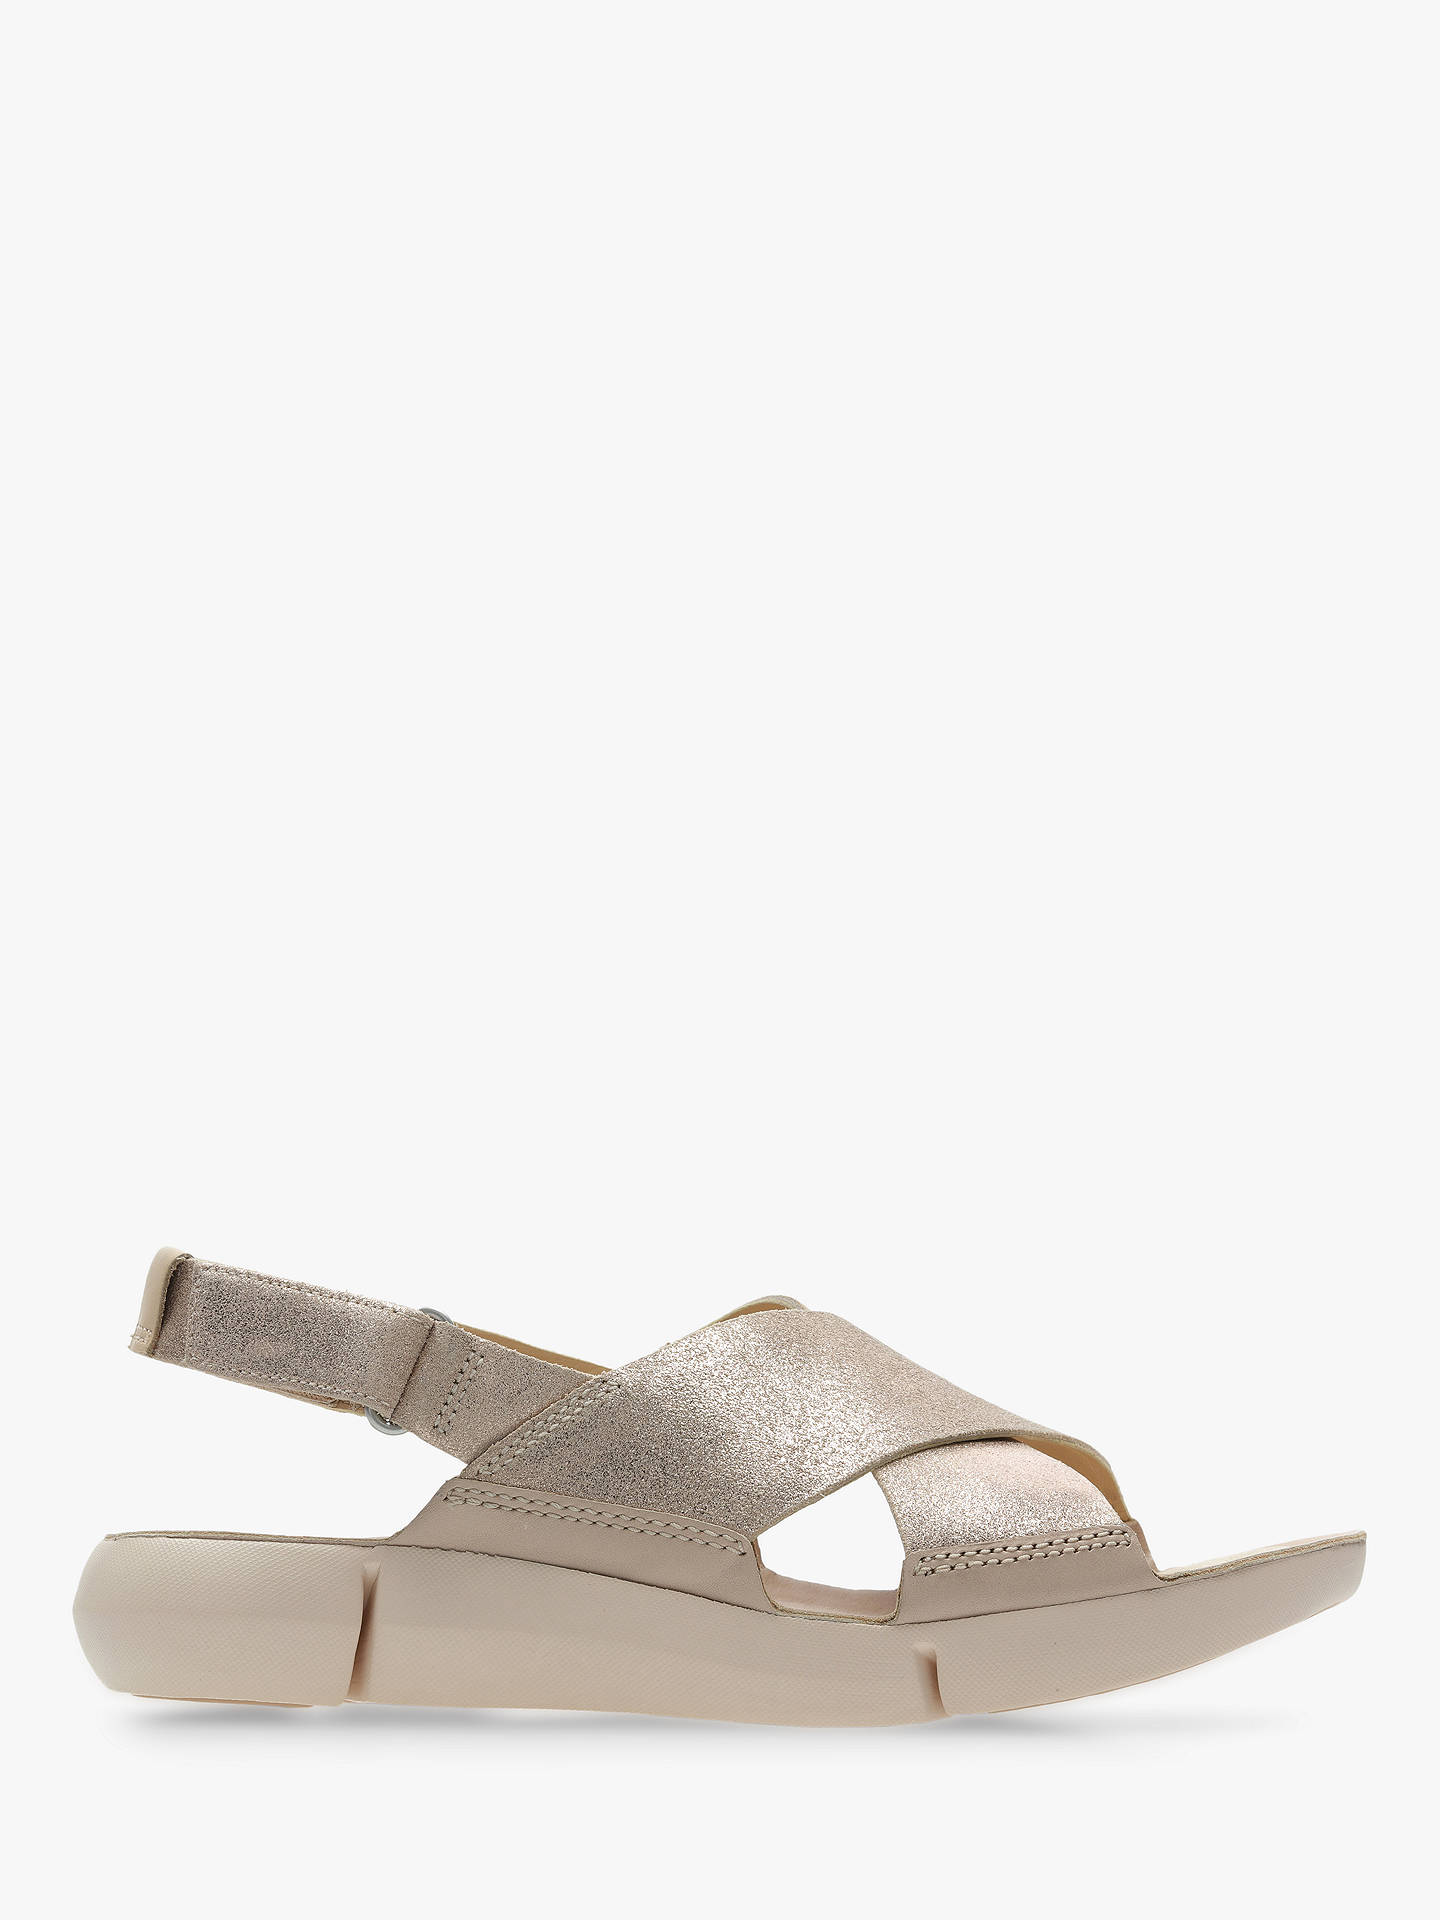 1290fc04477f4 Buy Clarks Tri Chloe Cross Strap Sandals, Nude/Pink Suede, 5 Online at ...